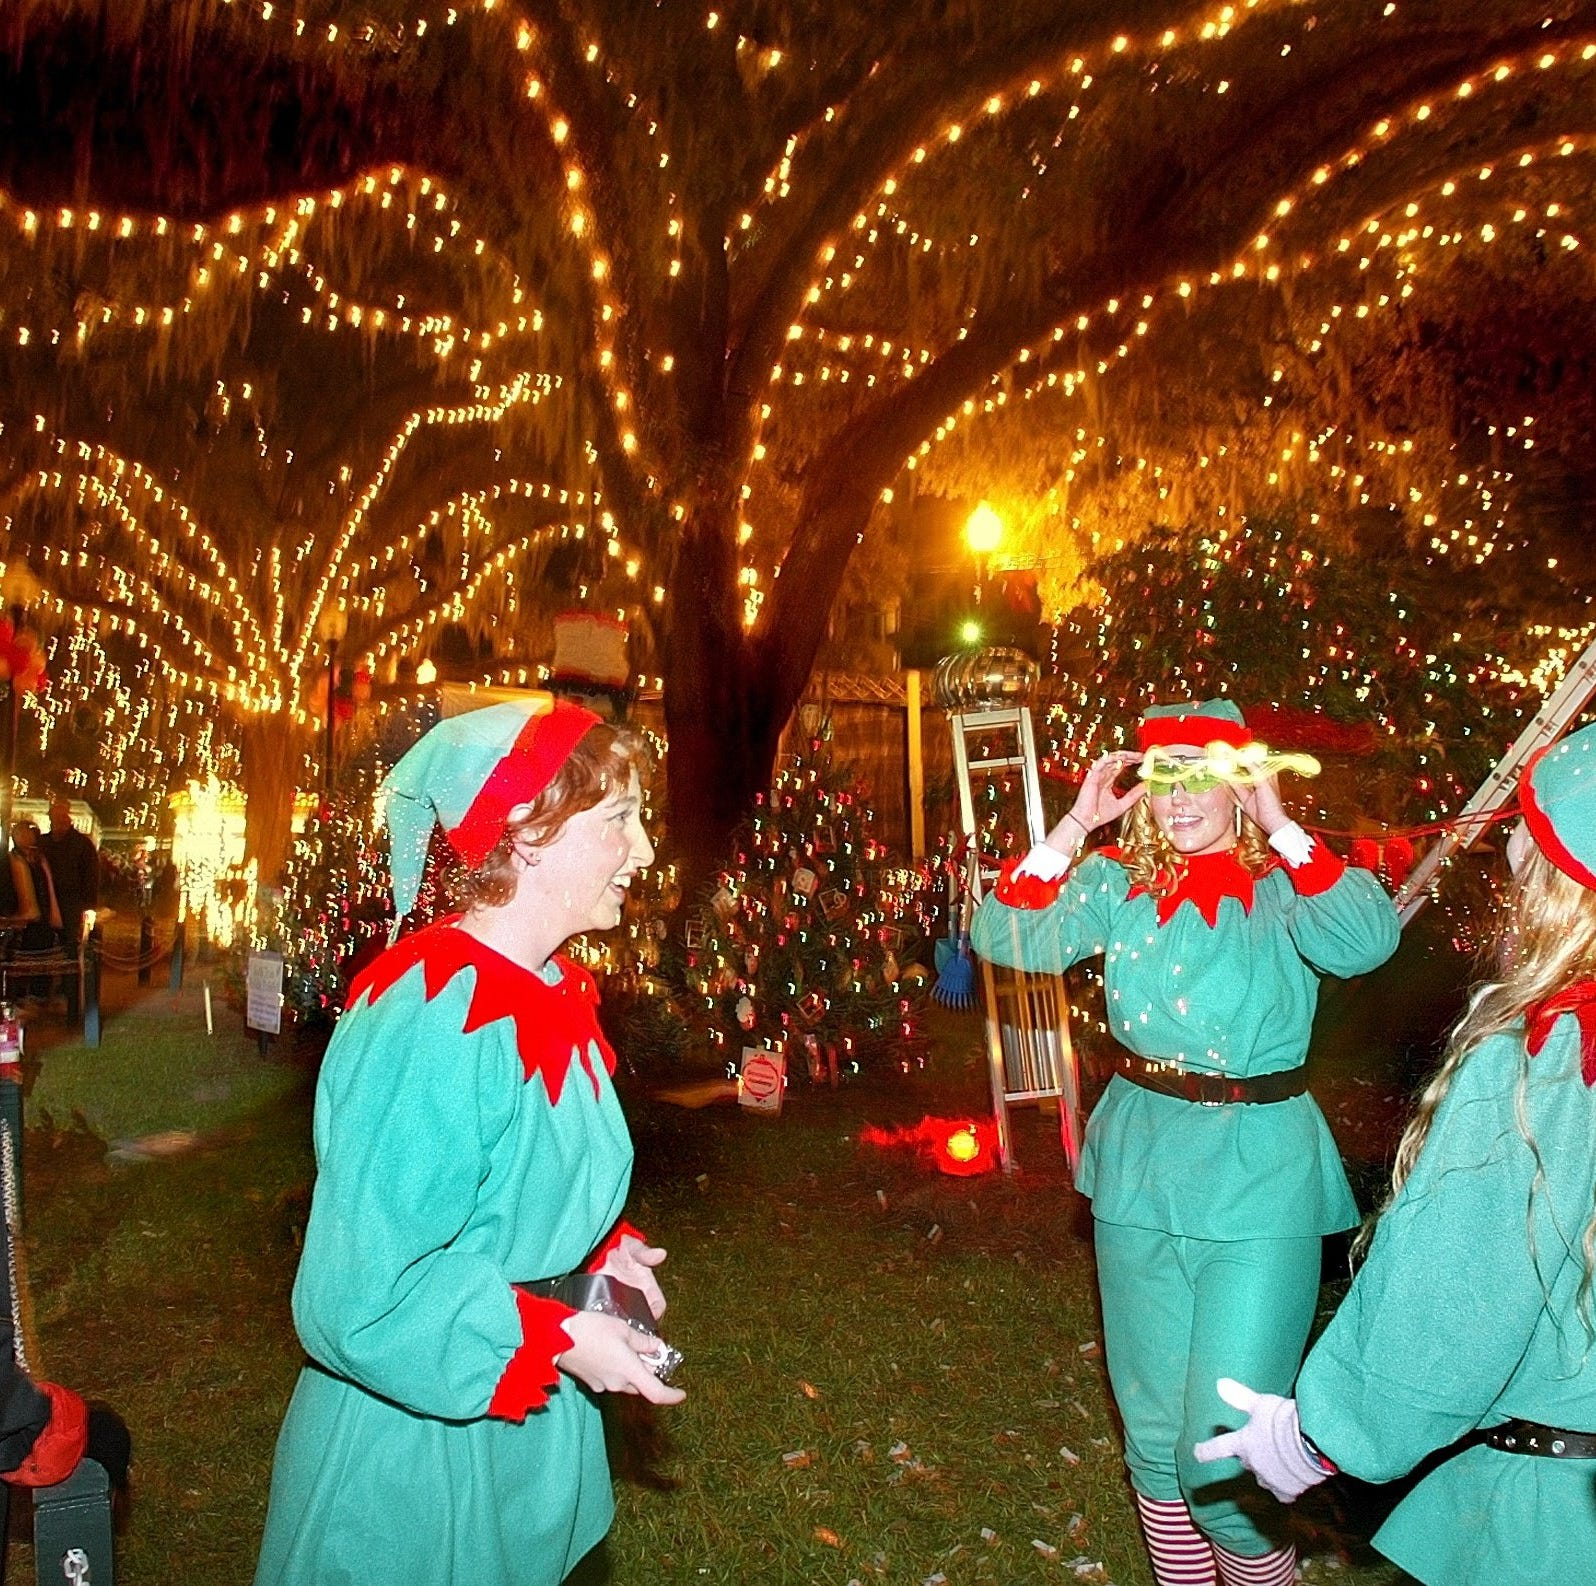 Annual Winter Festival to light up downtown Tallahassee